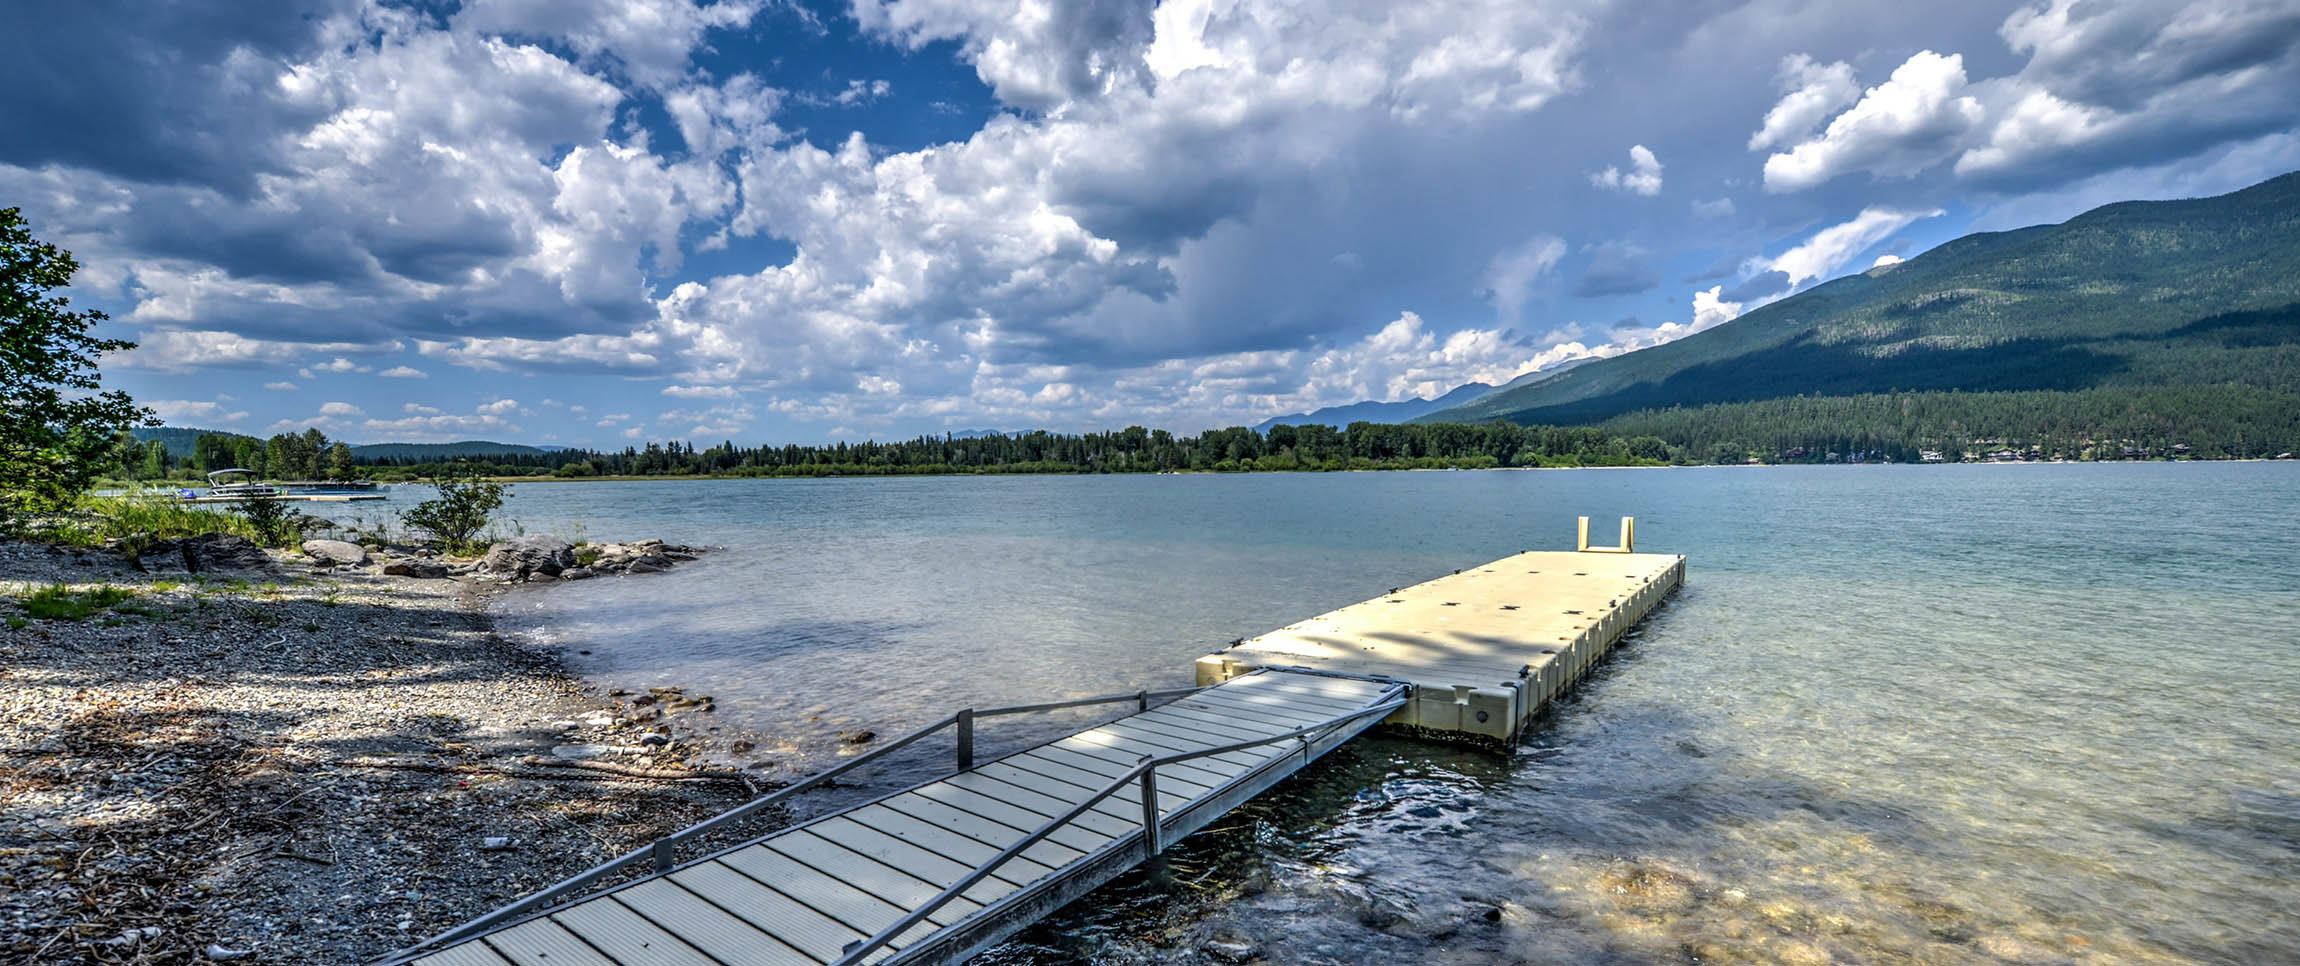 Whitefish Lake Lot, whitefish, Montana